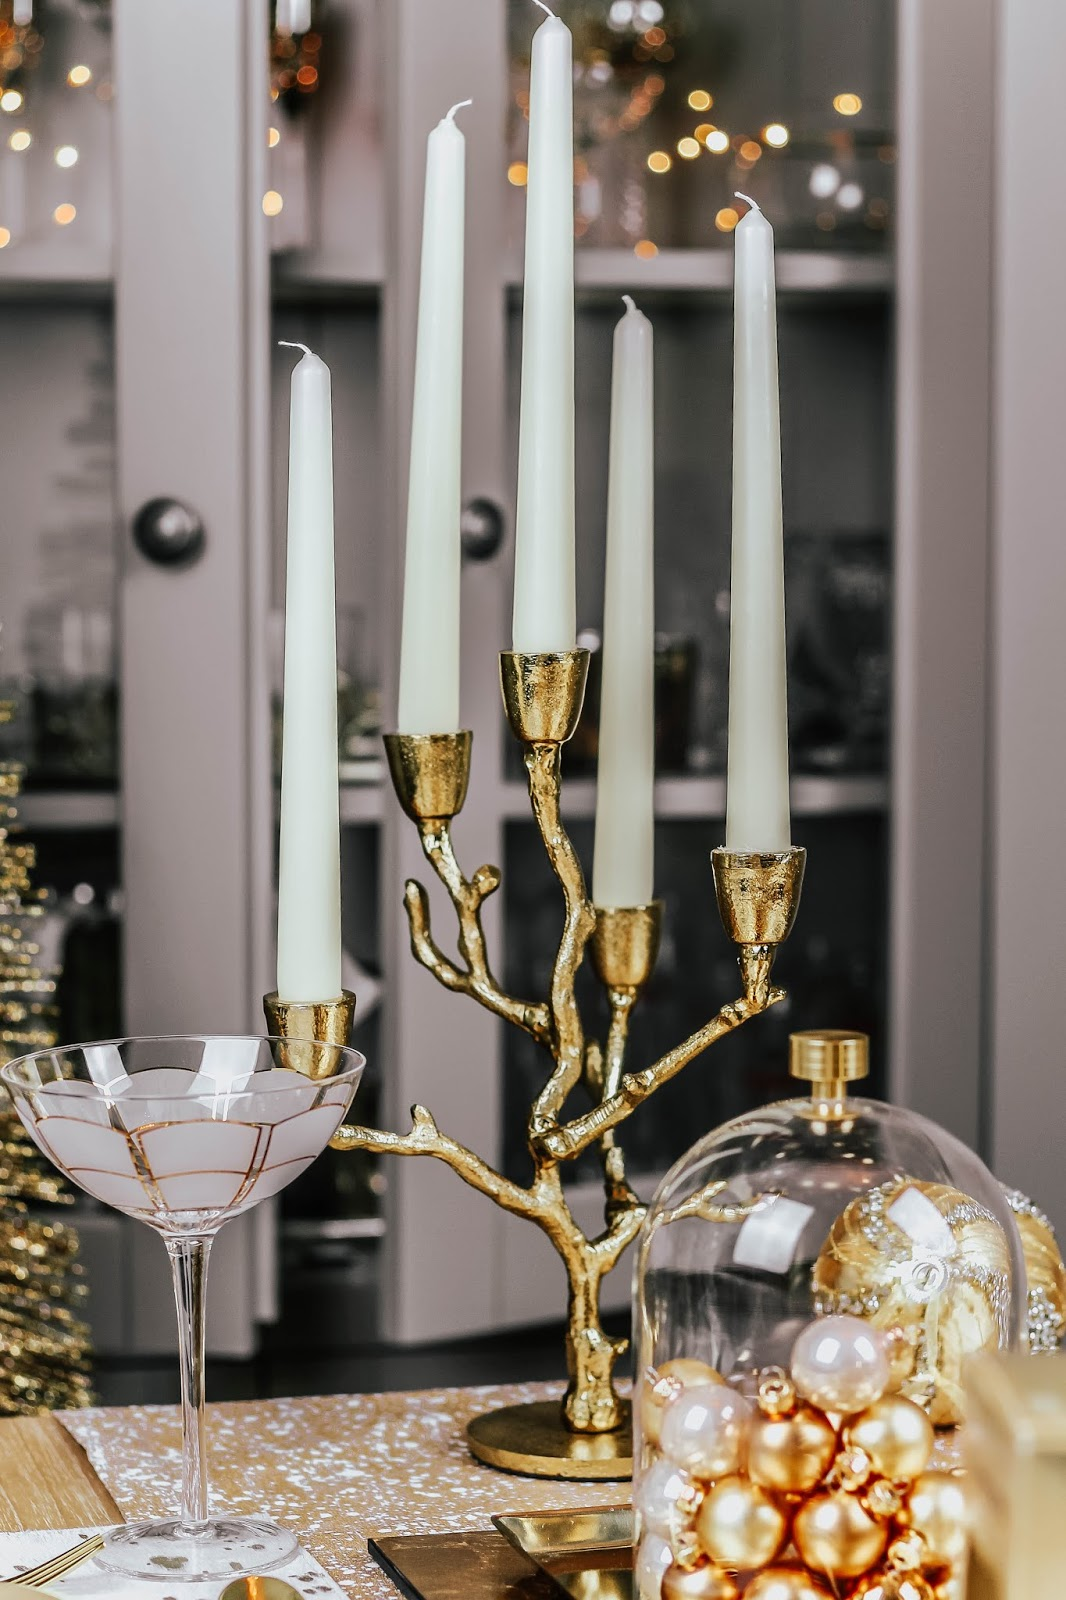 Luxury Table Setting Gold Candle Display